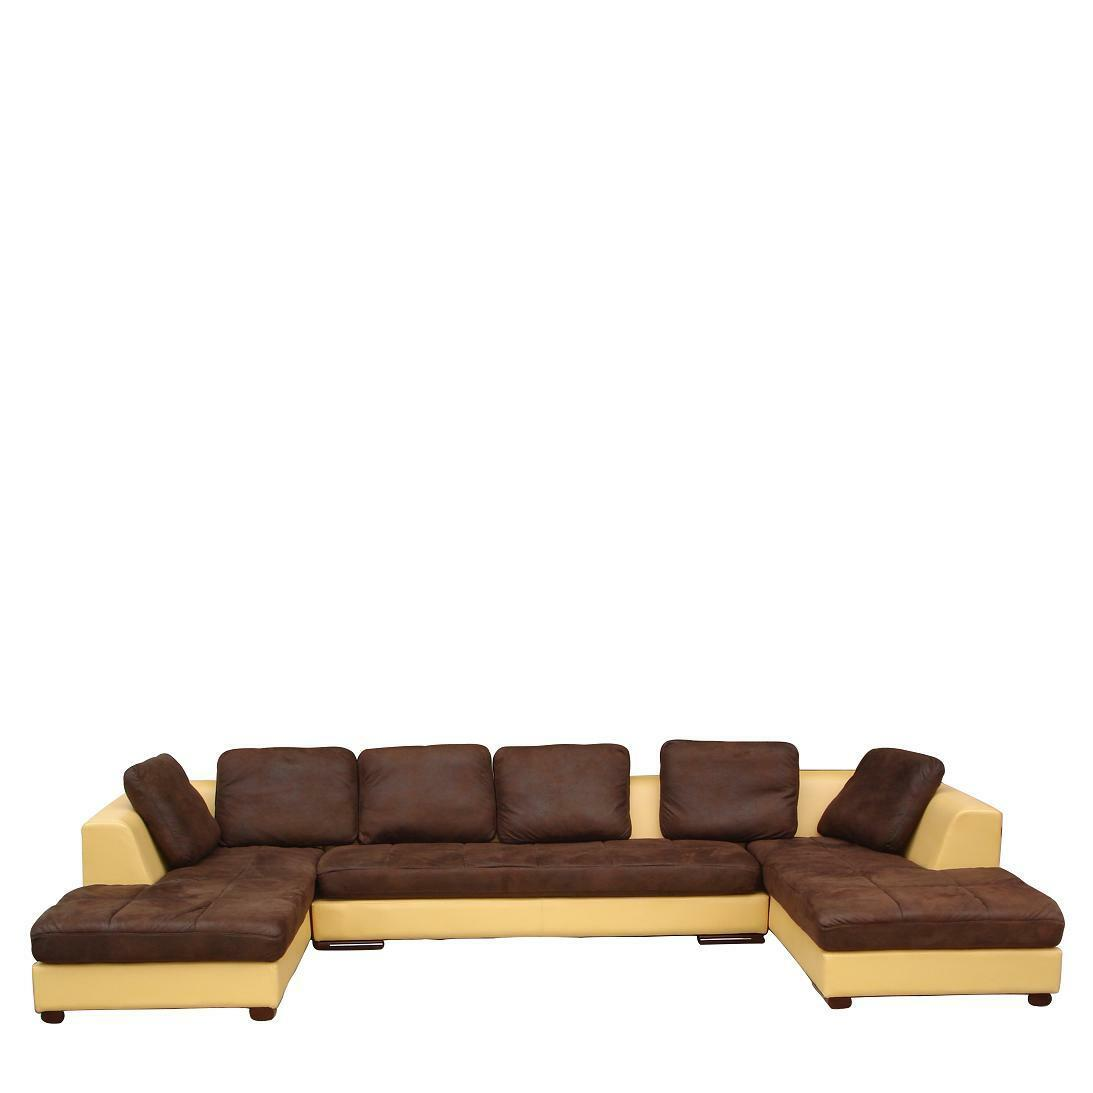 Design microfaser ecksofa eckcouch sofa garnitur 5059 2hu for Sofa garnitur